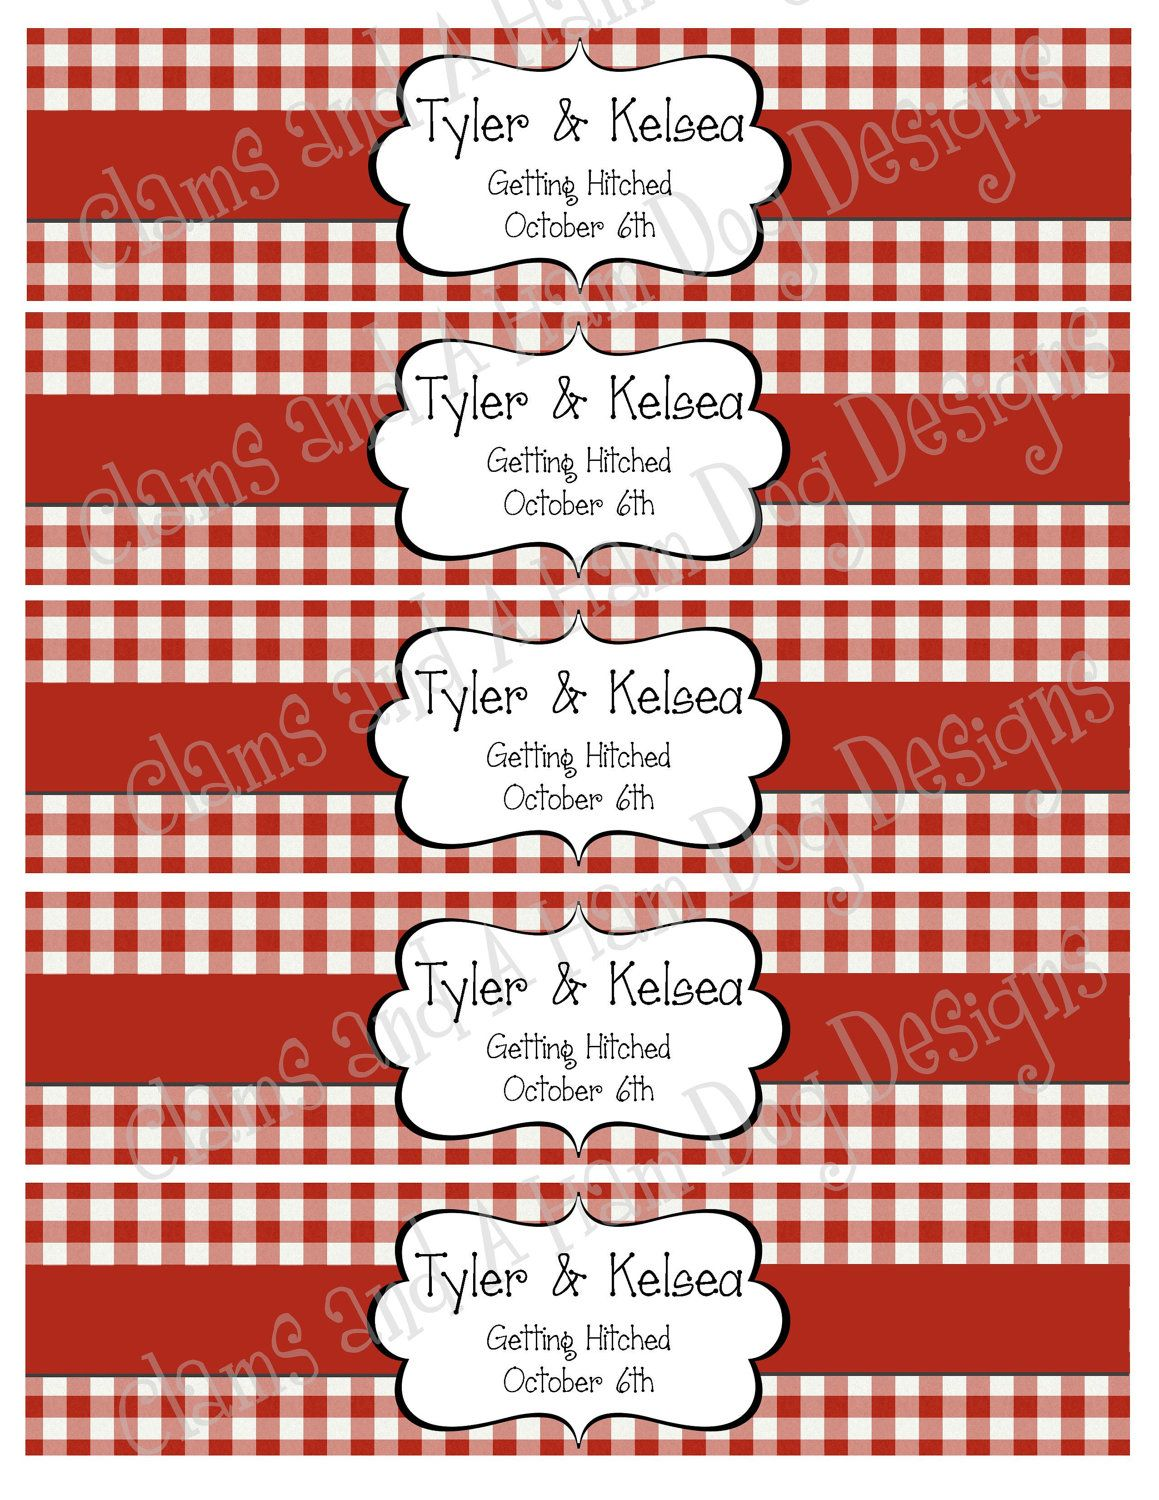 Customized Water Bottle Labels Includes Text Of Your Choice Farm Picnic Barbecue Bbq Theme